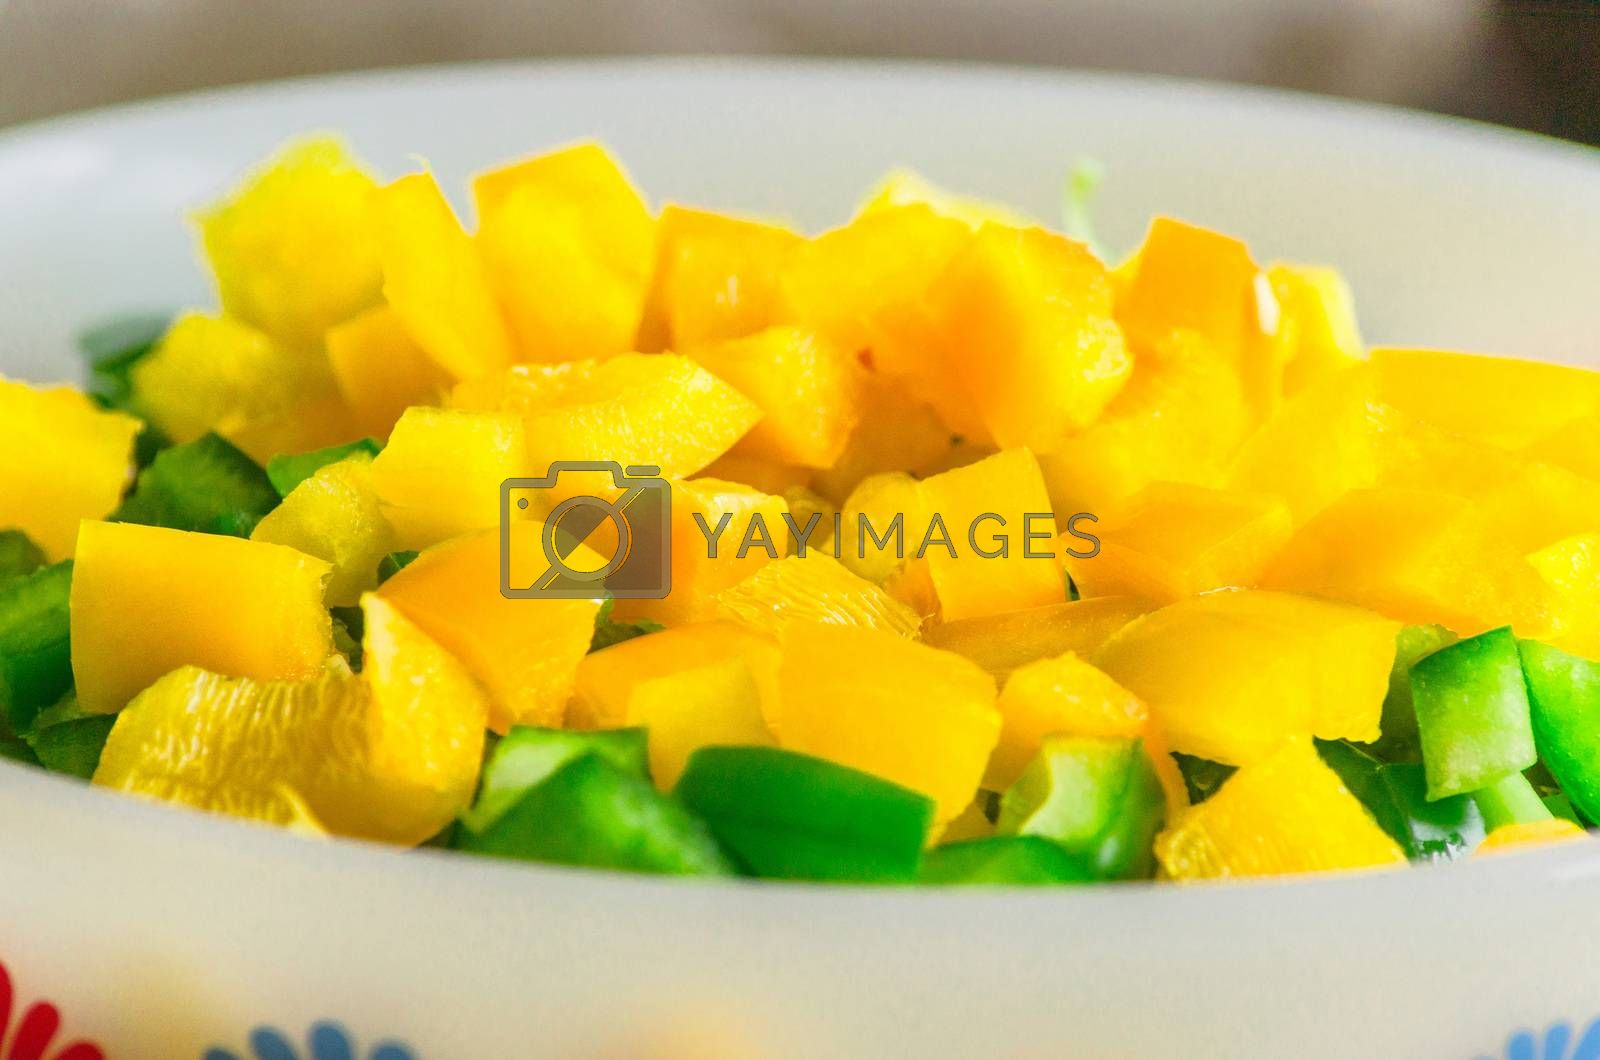 Paprika pieces in a bowl by JFsPic